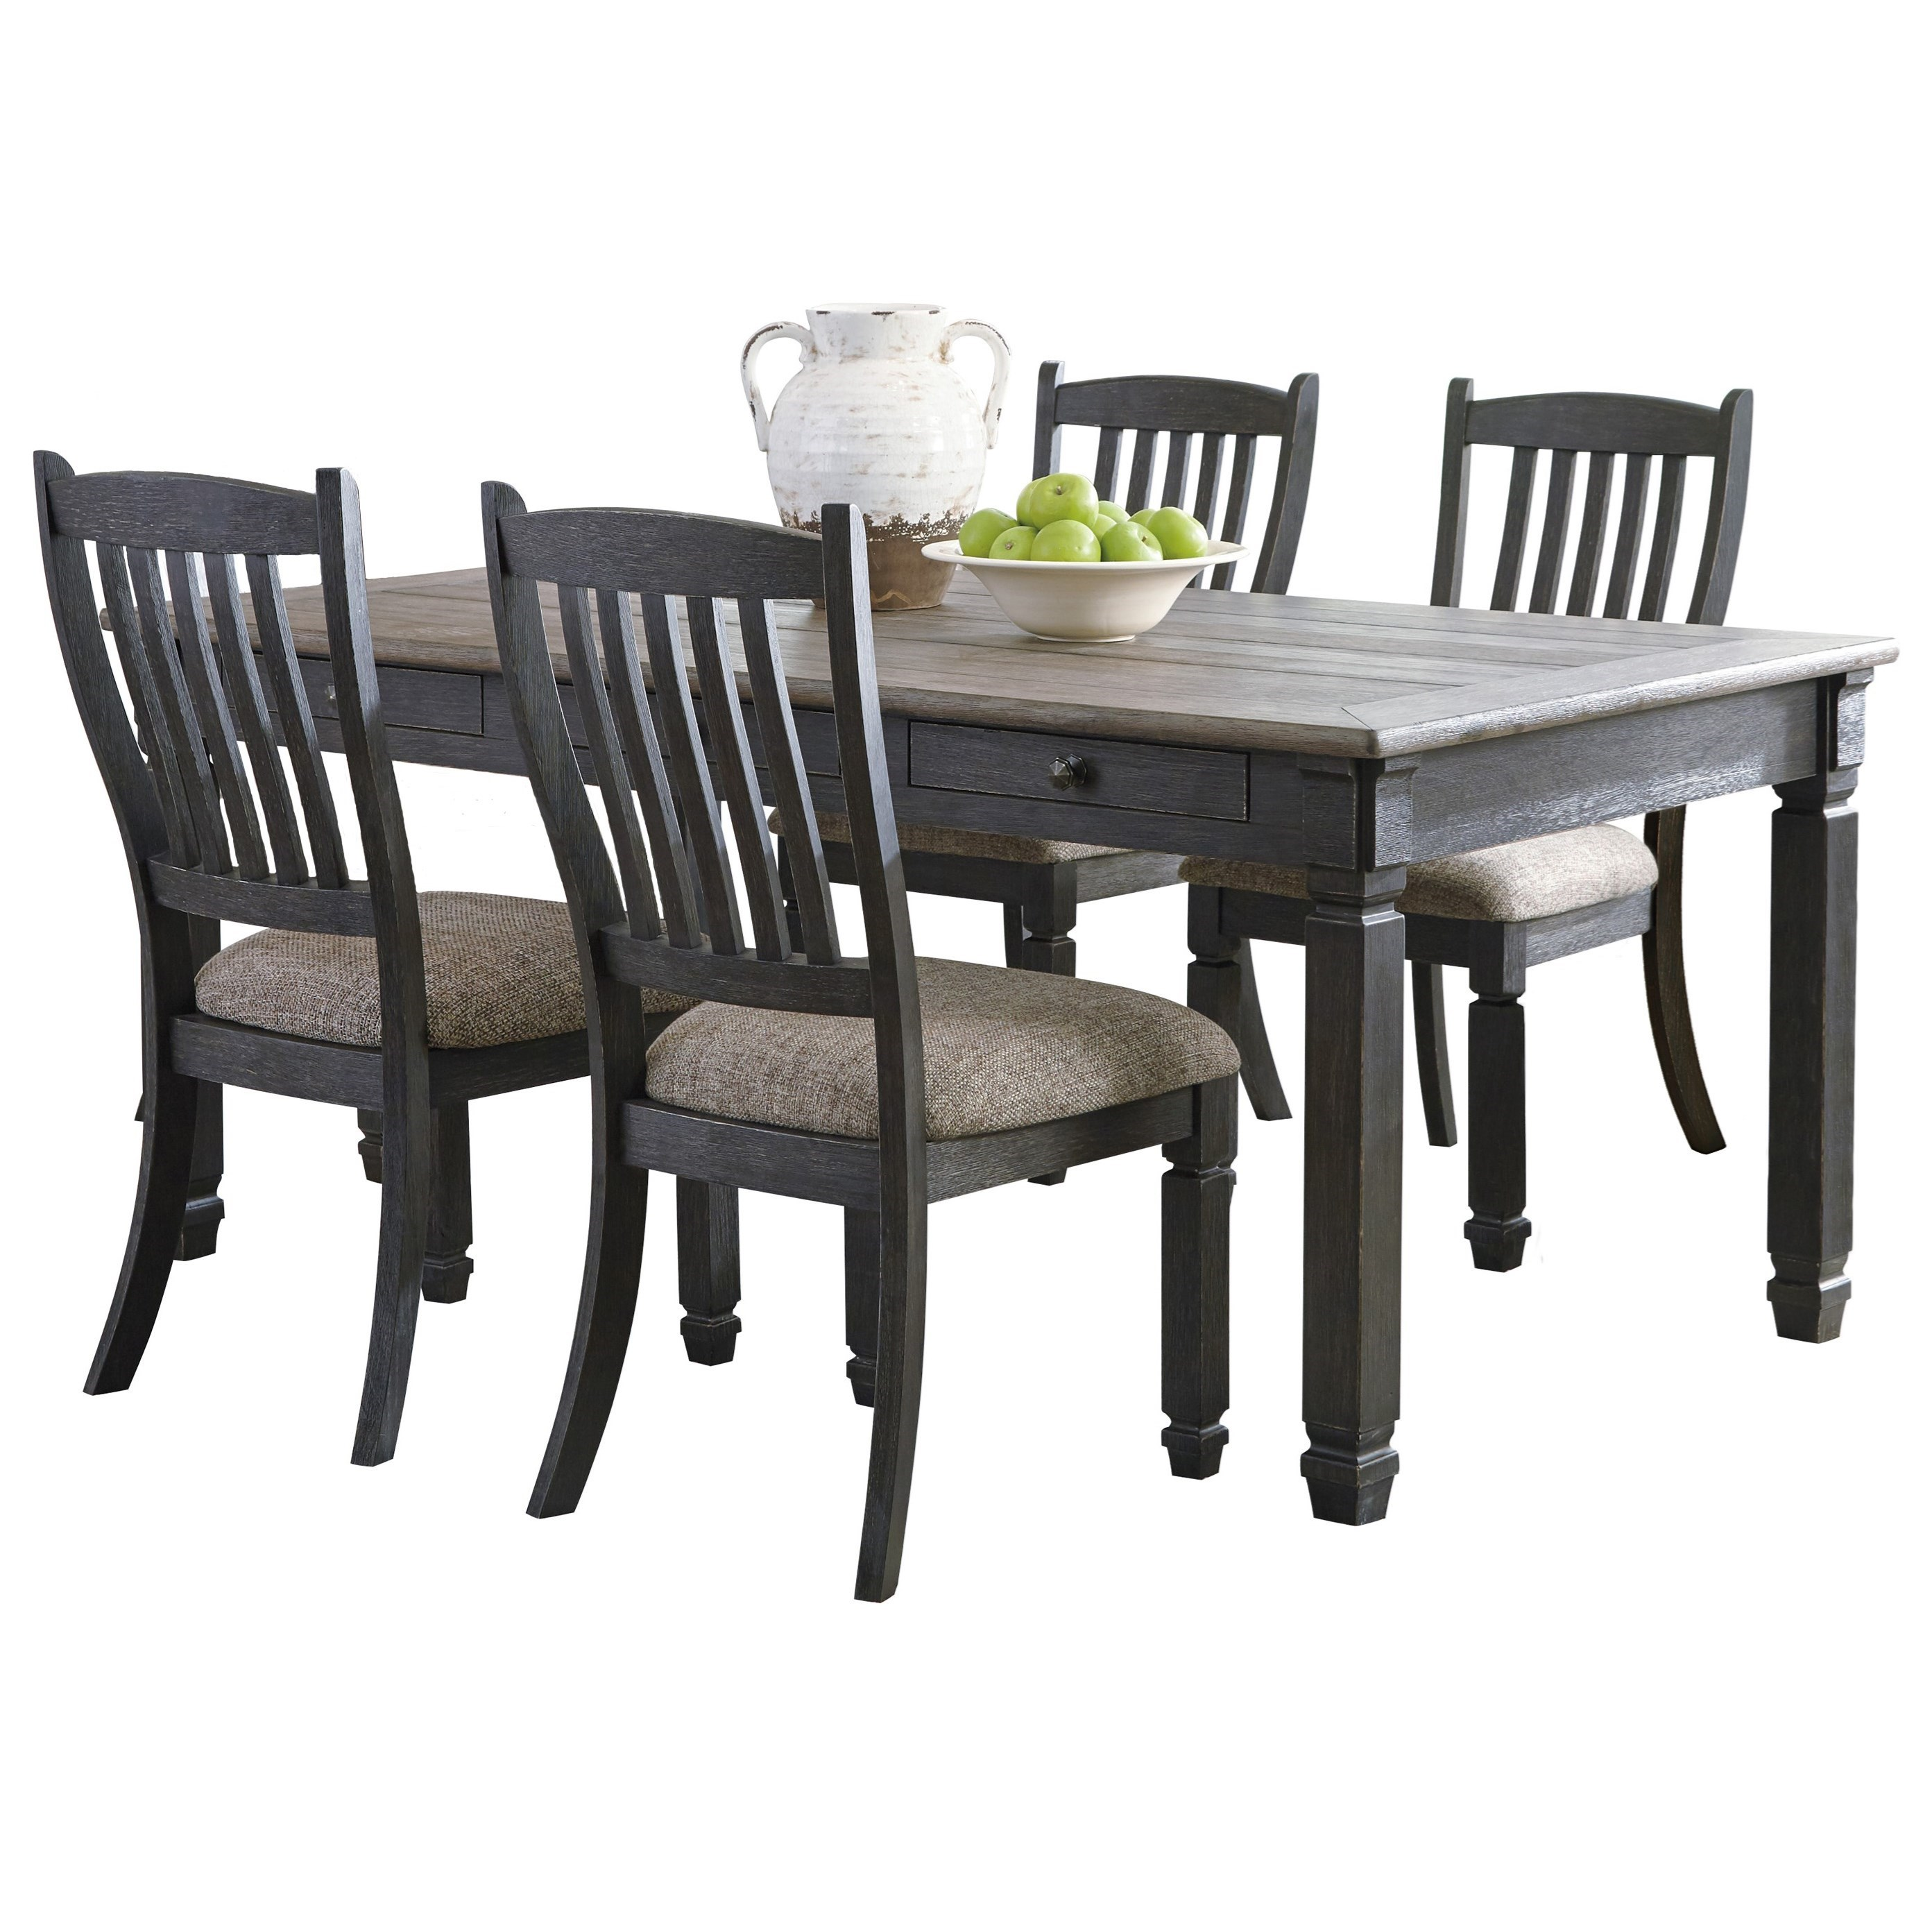 Tyler Creek 5-Piece Table and Chair Set by Signature Design by Ashley at Northeast Factory Direct